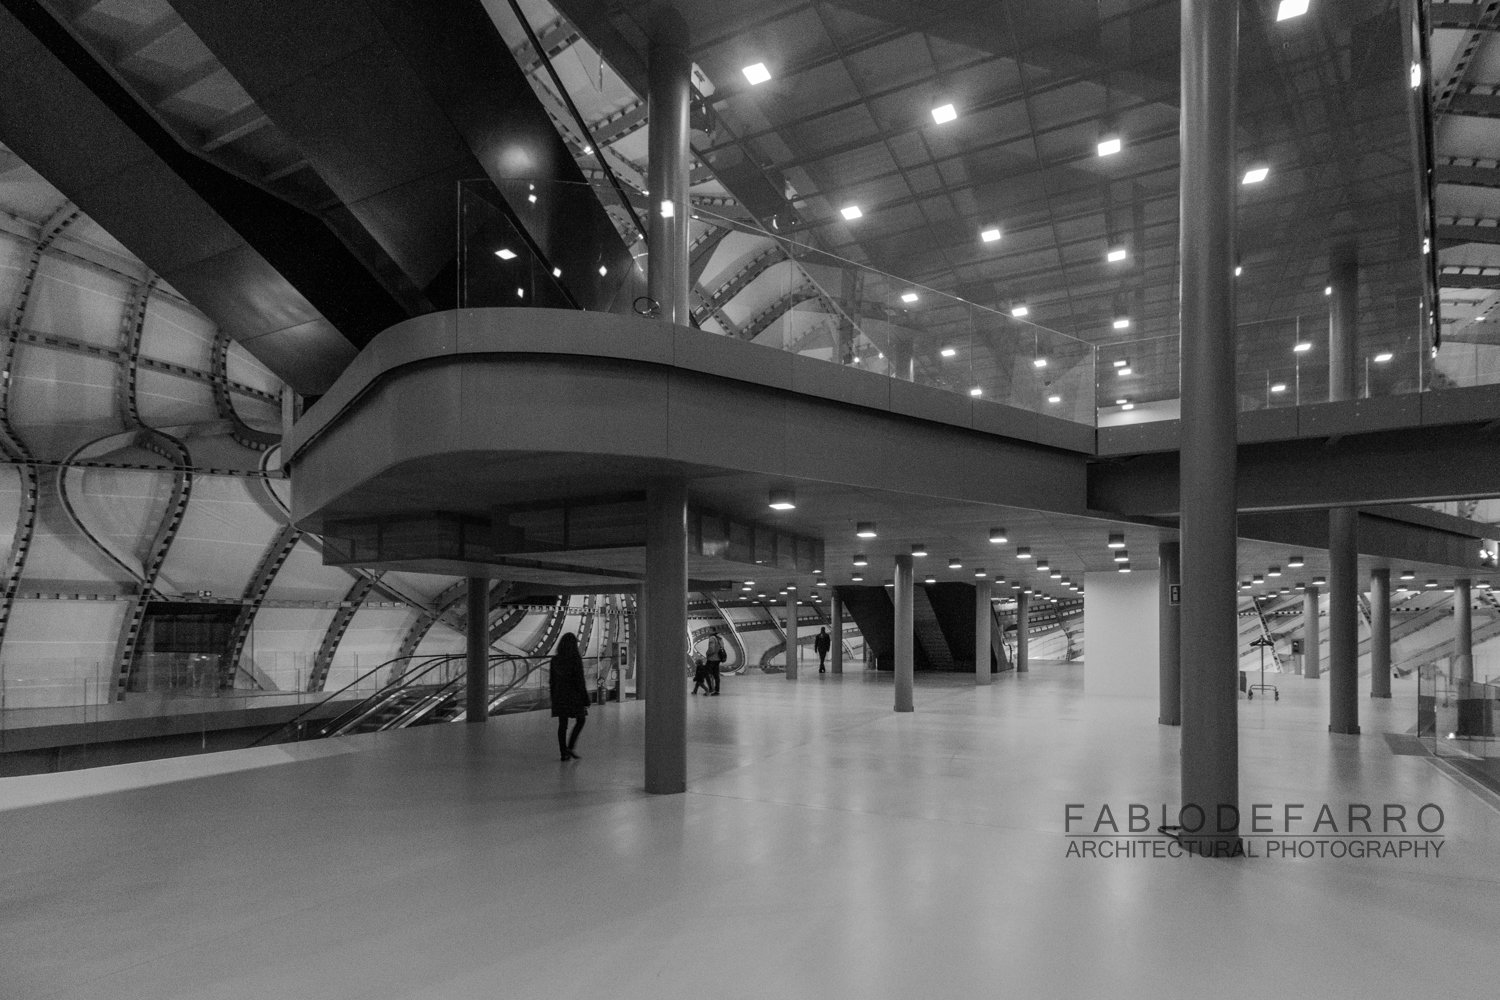 Convention Center - Rome The Cloud - Fuxas Studio - First level